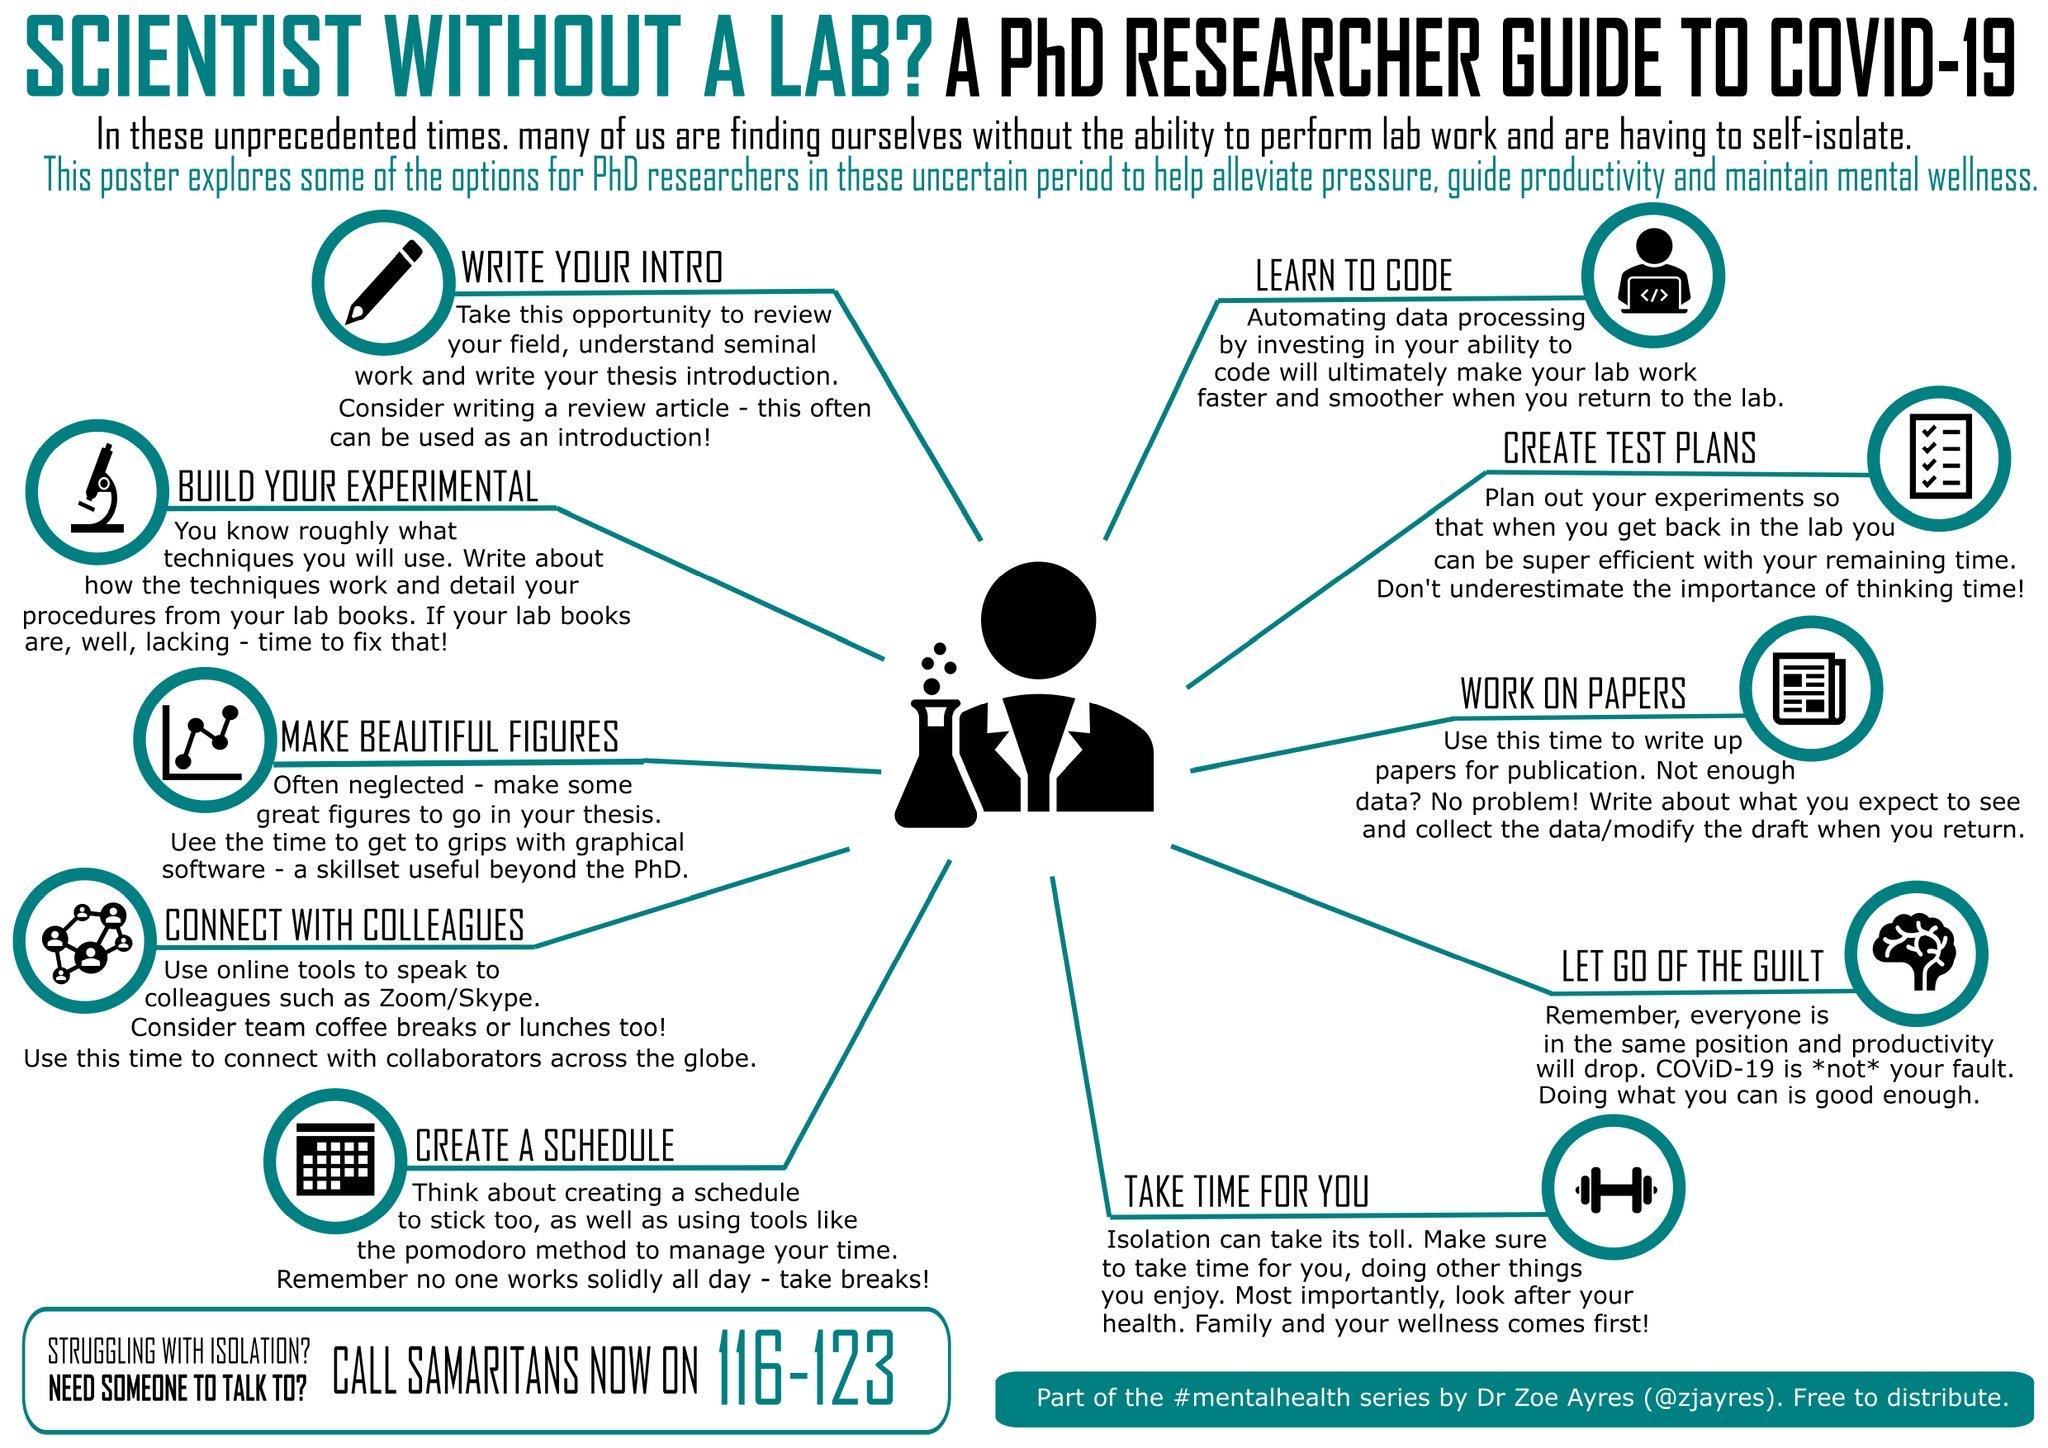 Research without a lab 2